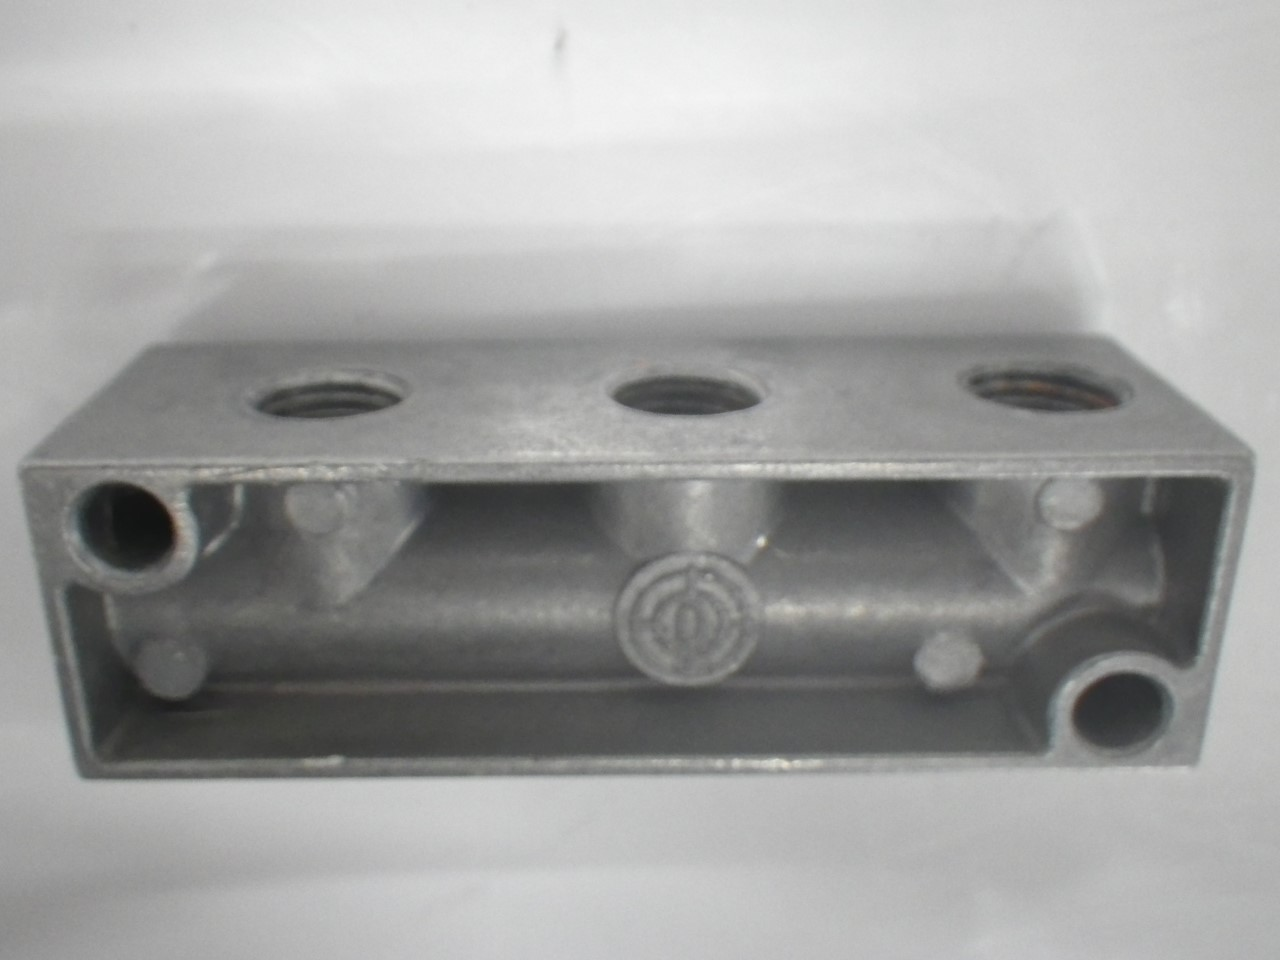 IMGP1108FR-4-14C Festo Pneumatic Distributor Block 3 Holes 9 x 2.7 x 3cm (Used Tested) (14)